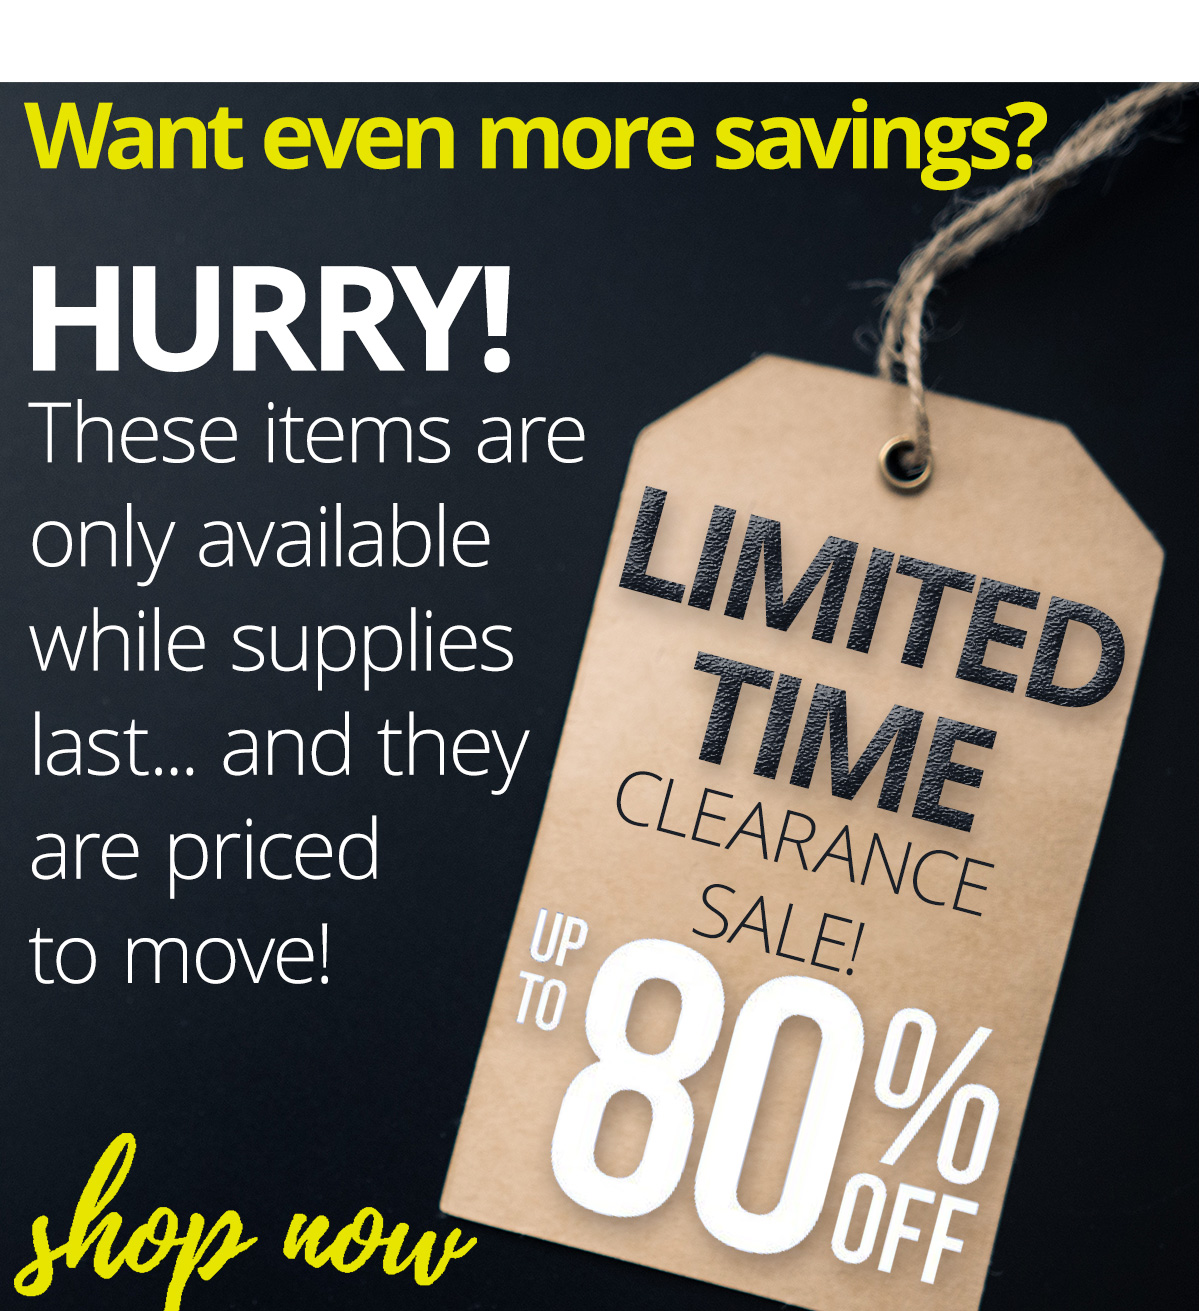 Looking for more savings? Check out our clearance sale with items up to 80% off!